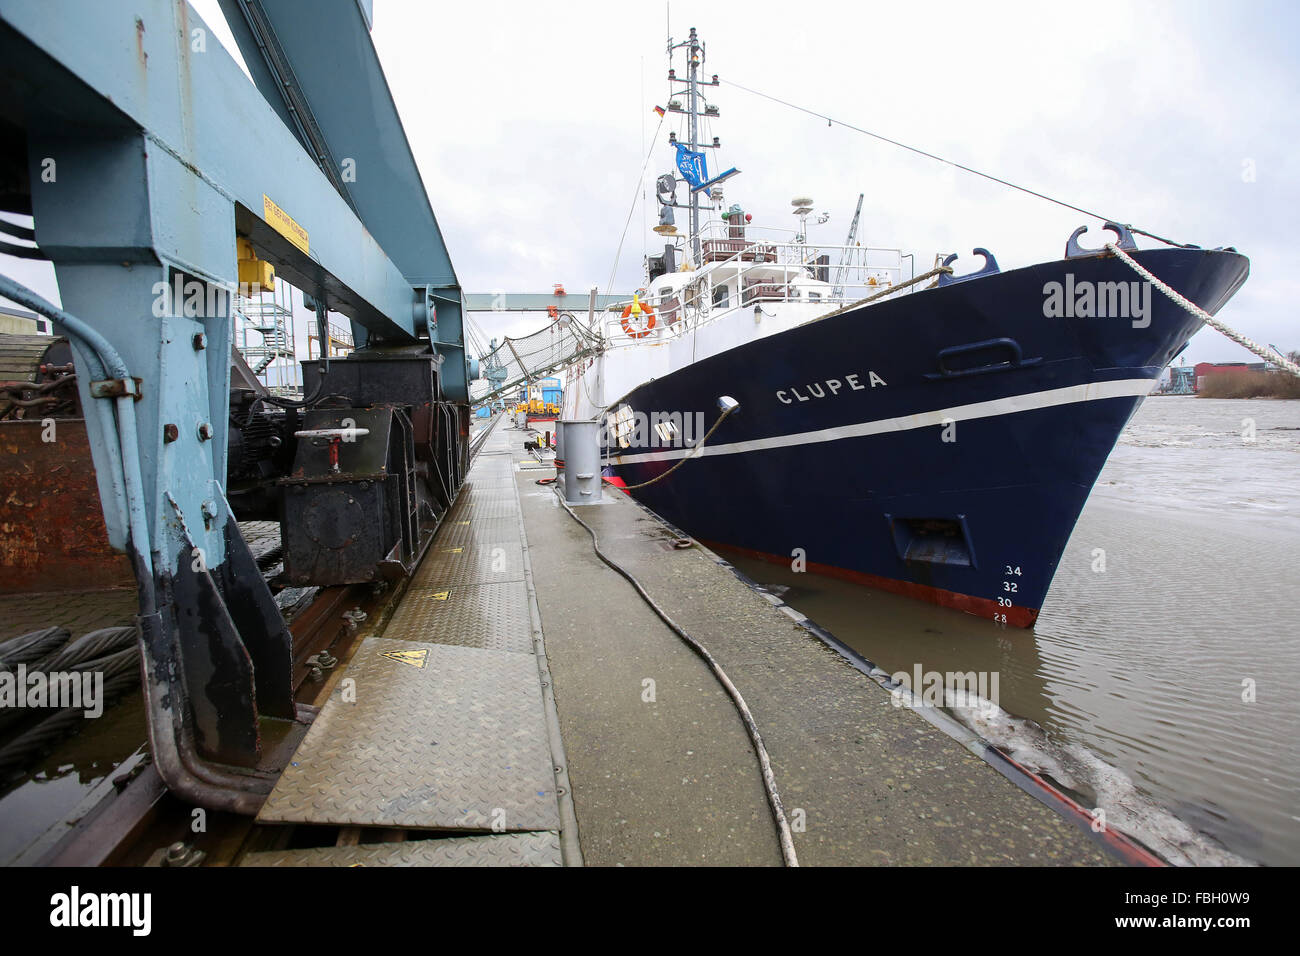 Hamburg, Germany. 8th Jan, 2016. The former research vessel 'Clupea' which is being converted to rescue - Stock Image